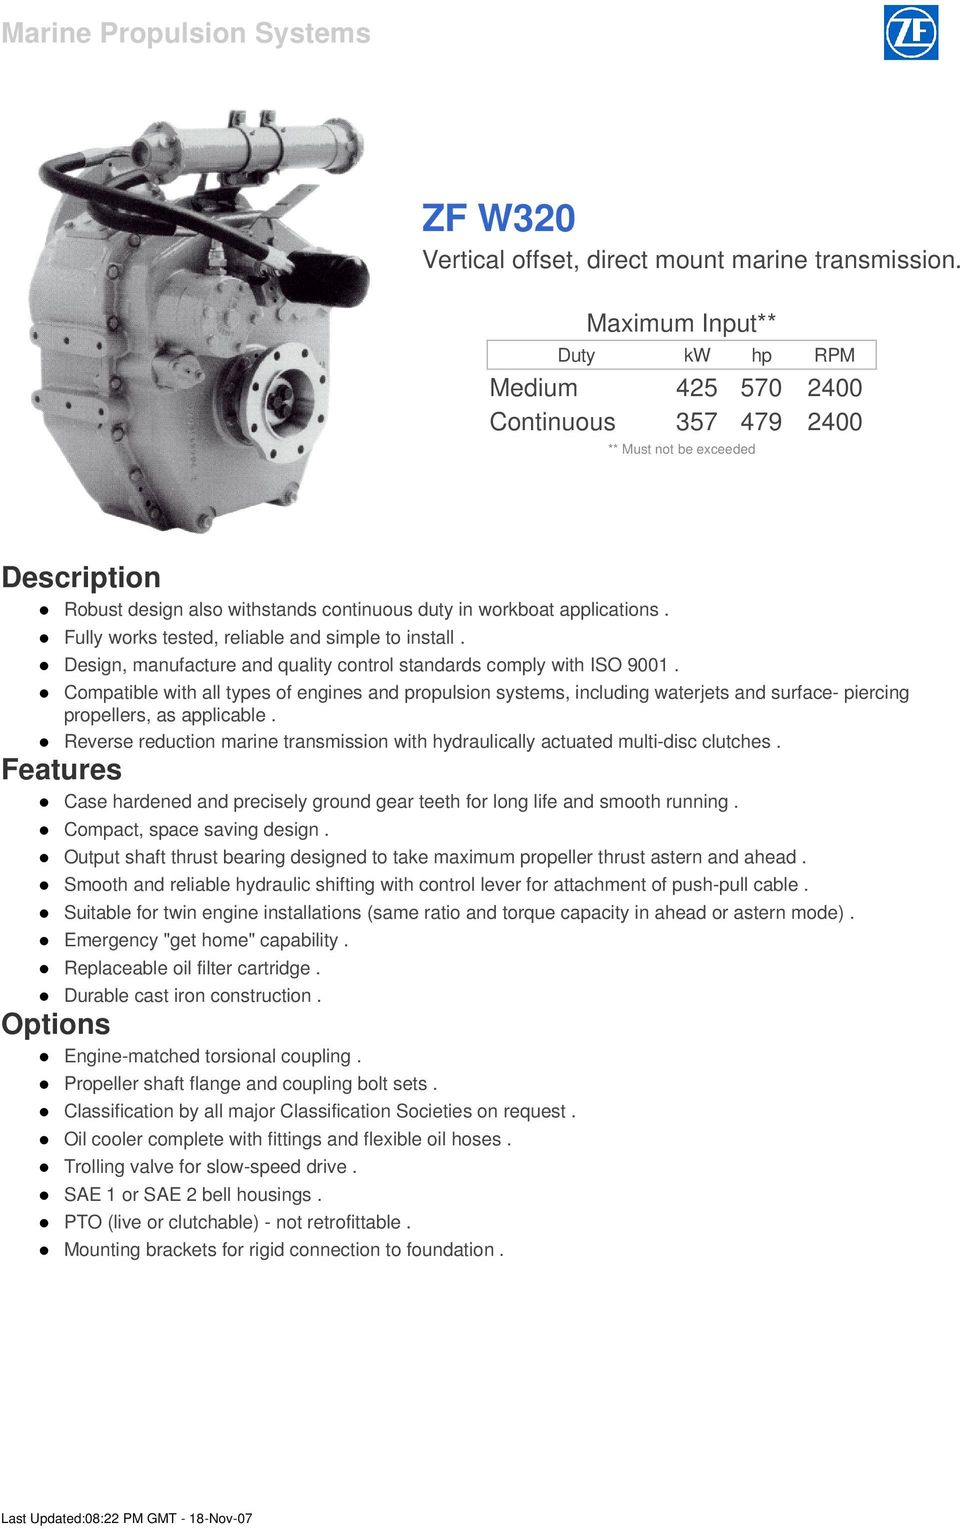 ZF W320 Vertical offset, direct mount marine transmission  - PDF